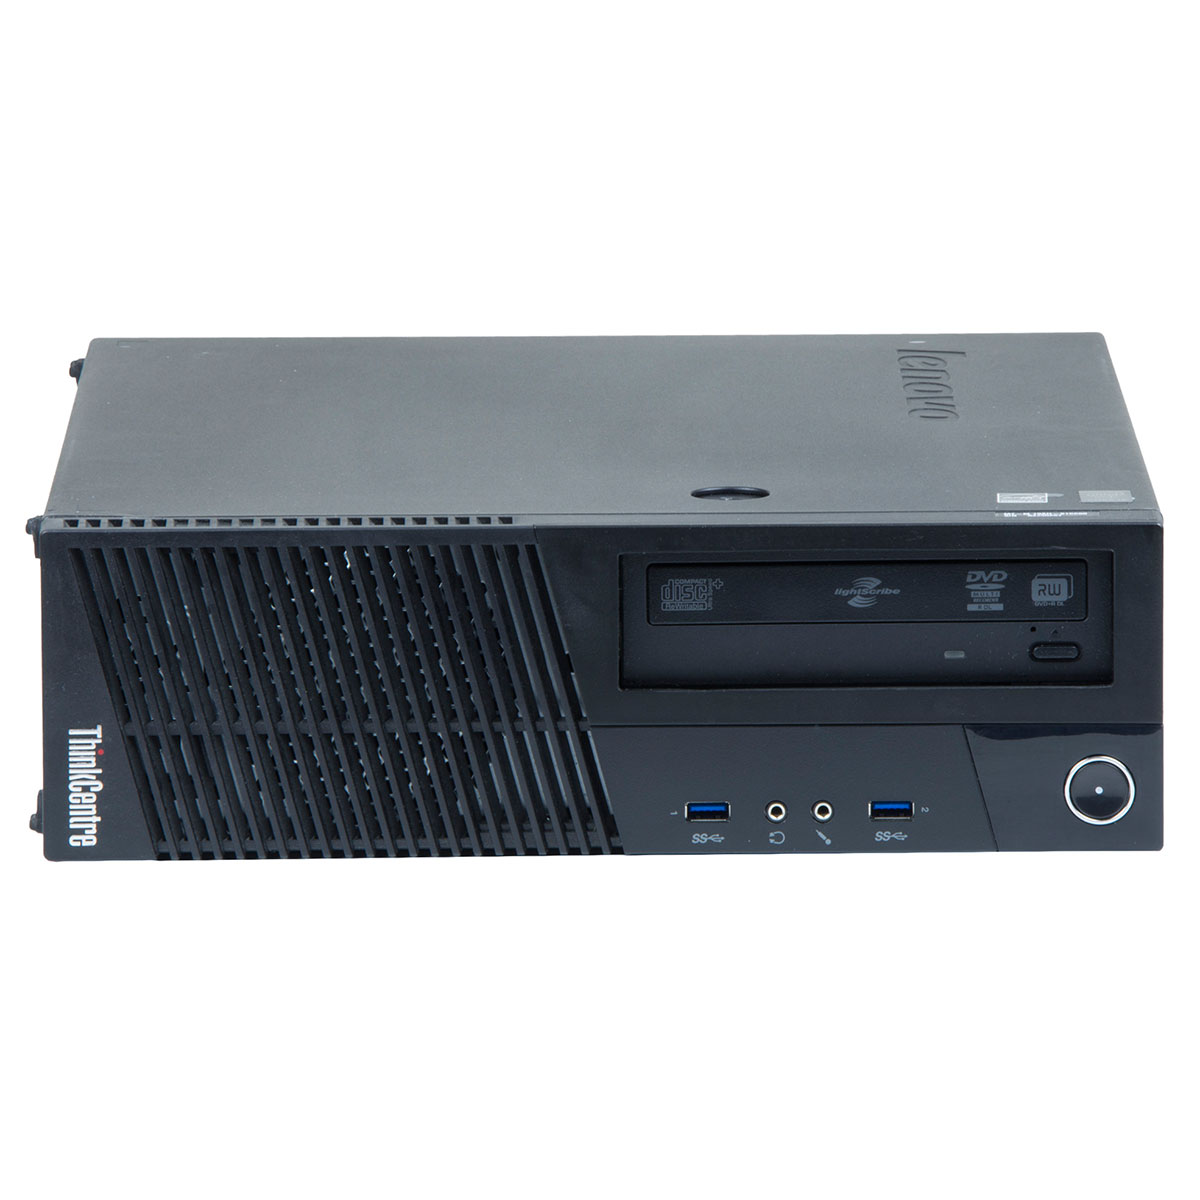 Lenovo ThinkCentre M83 Intel Core i5-4570 3.20GHz  8GB DDR3  256GB SSD  SFF  Windows 10 Pro MAR  calculator refurbished